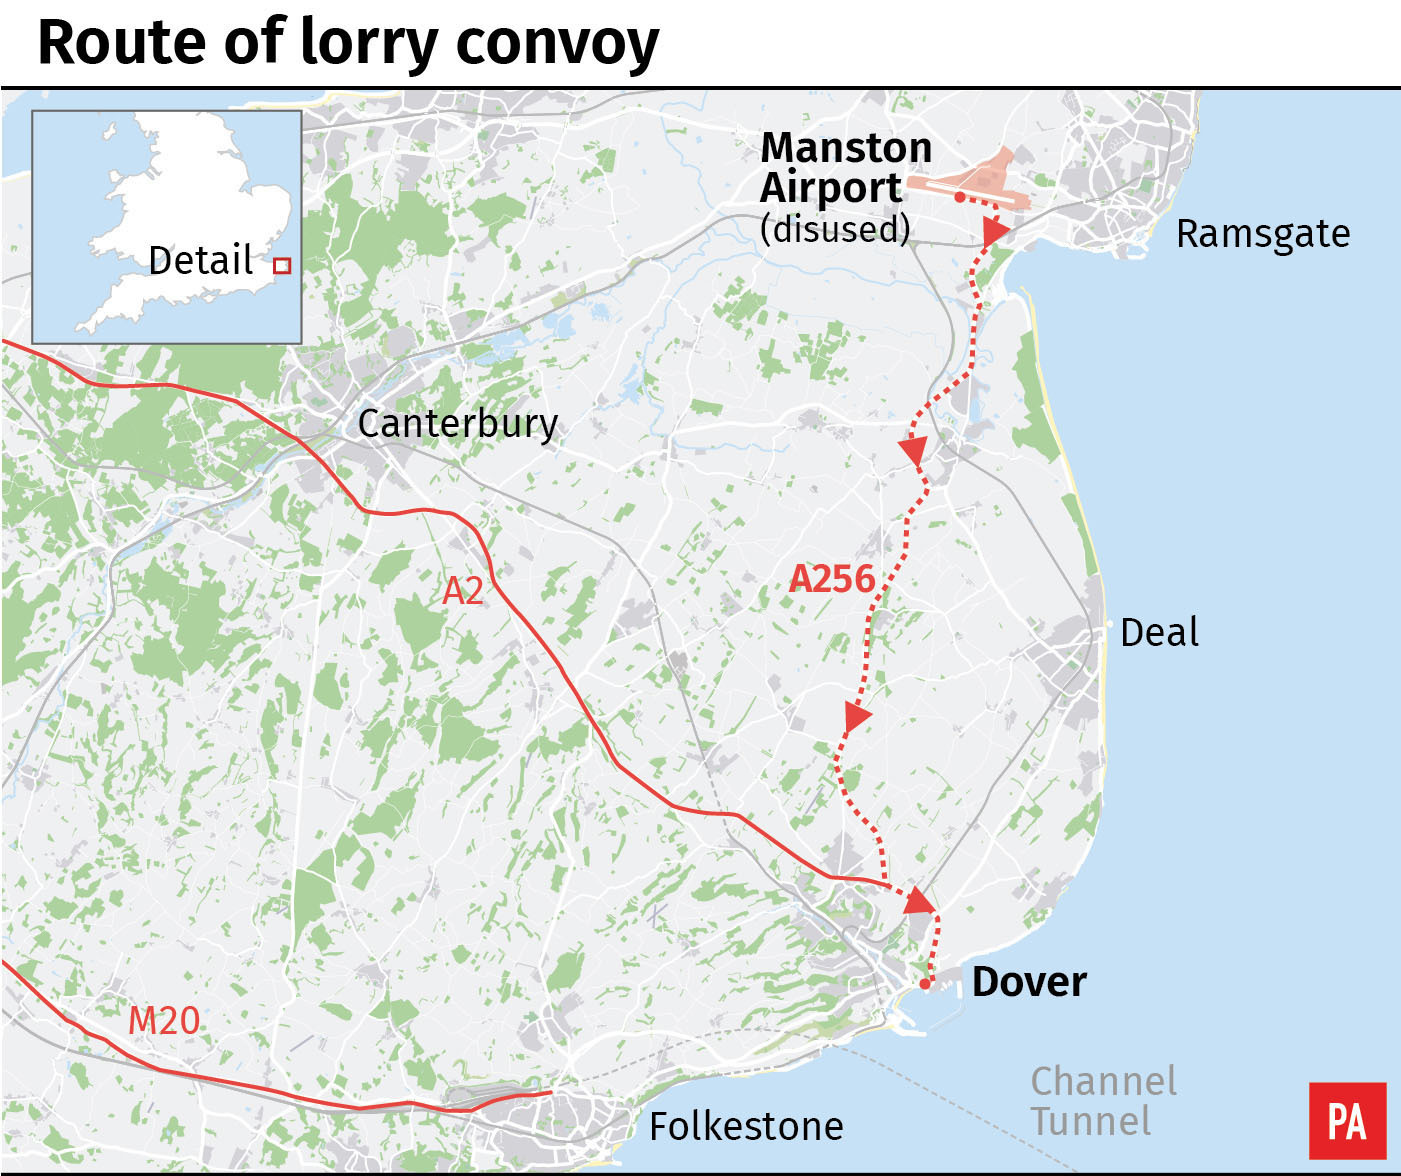 Route of lorry convoy from Manston Airport to Dover